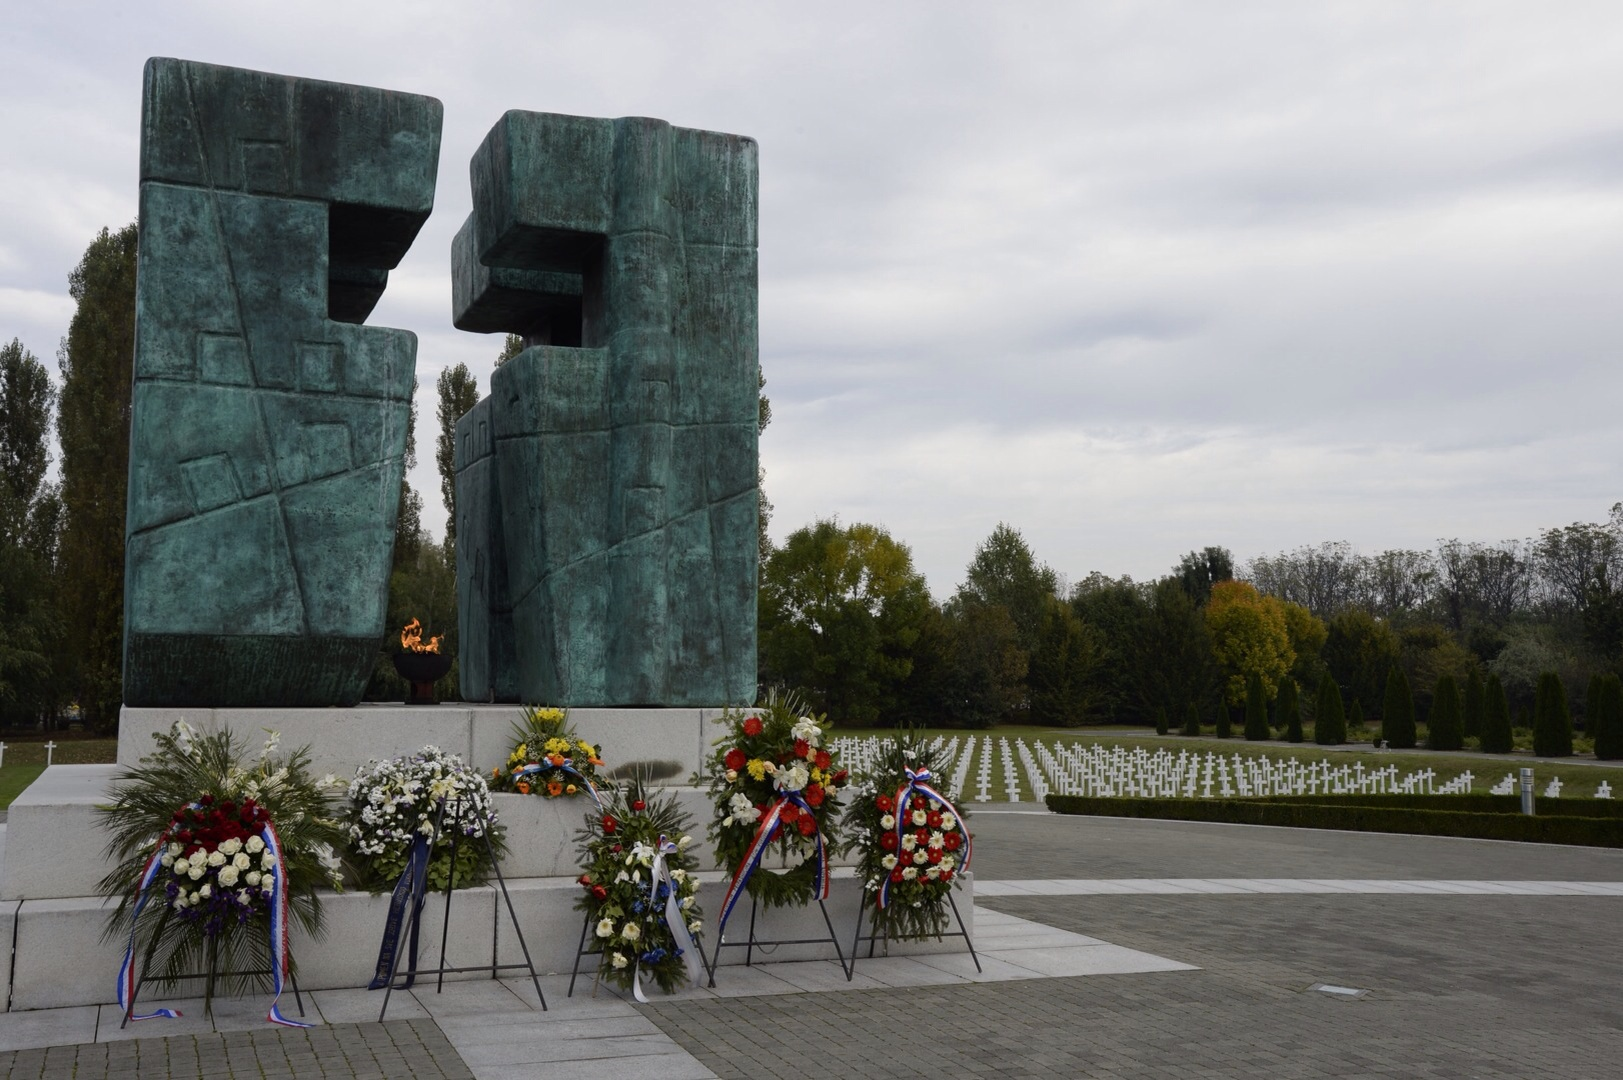 This statue of a cross in the War Victims Memorial holds an eternal flame to remember the Defenders and innocent civilians who dies during the war.